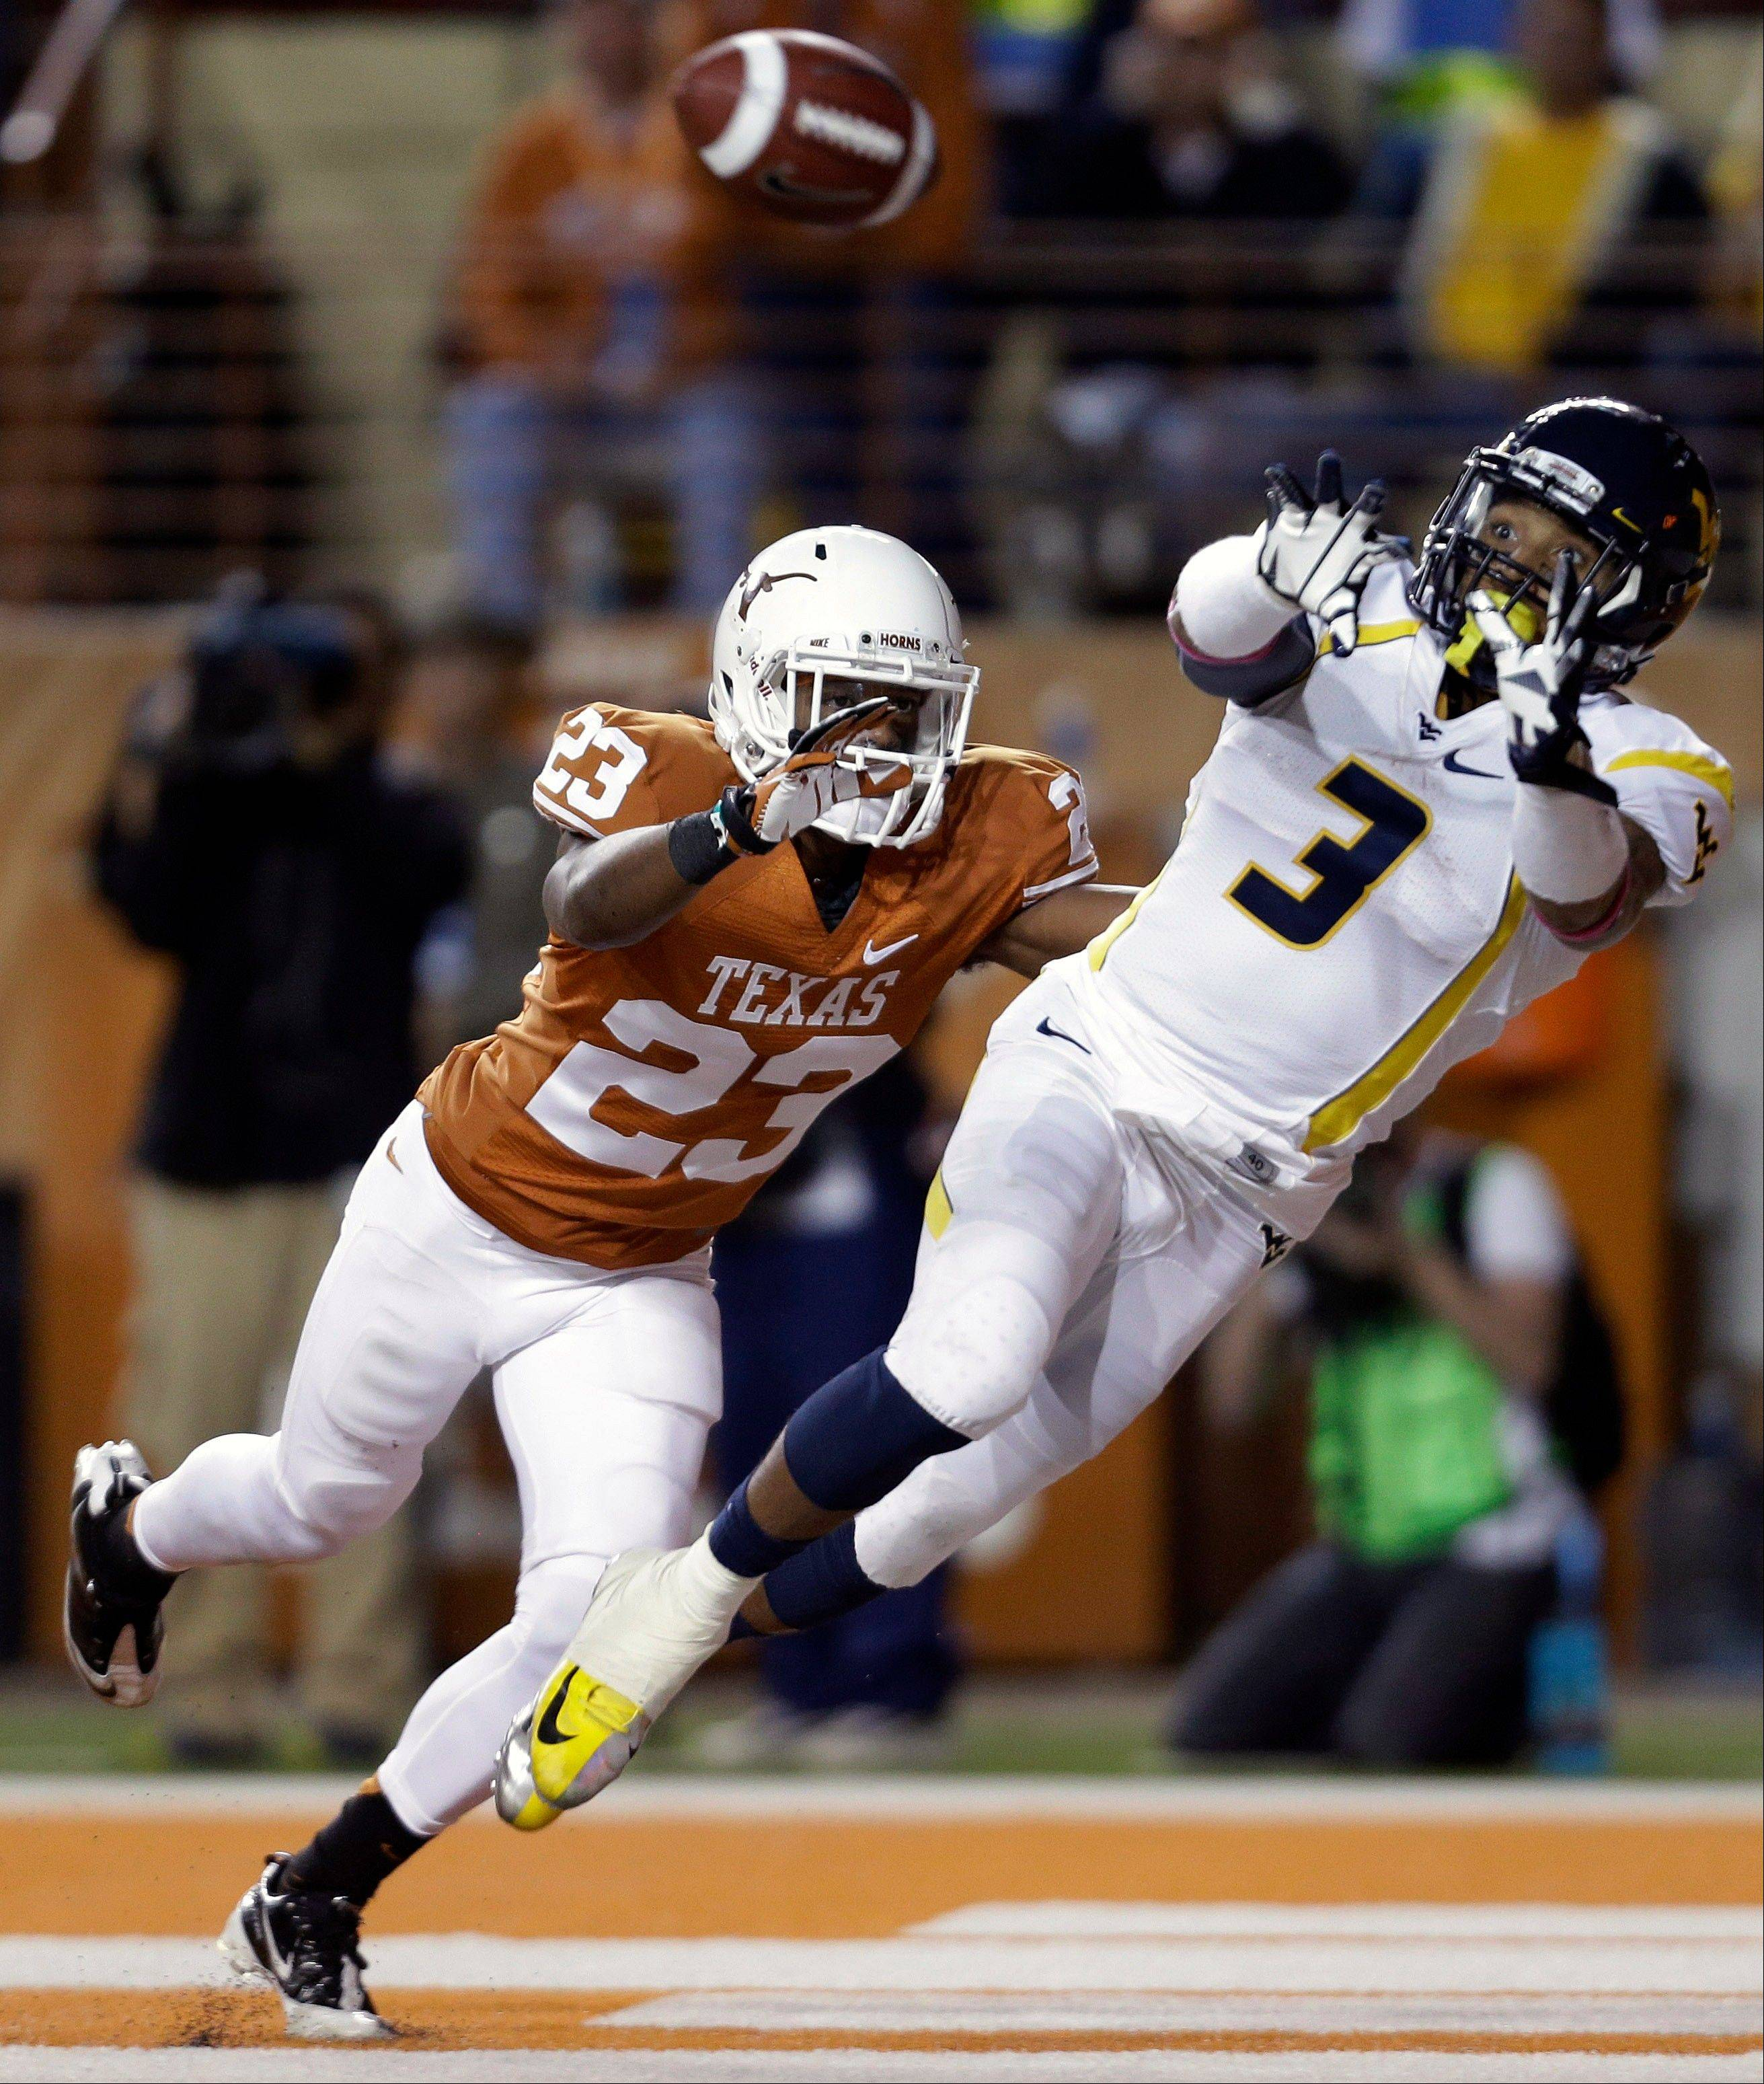 West Virginia�s Stedman Bailey leaps for a touchdown pass as Texas� Carrington Byndom defends during the third quarter Saturday in Austin, Texas.